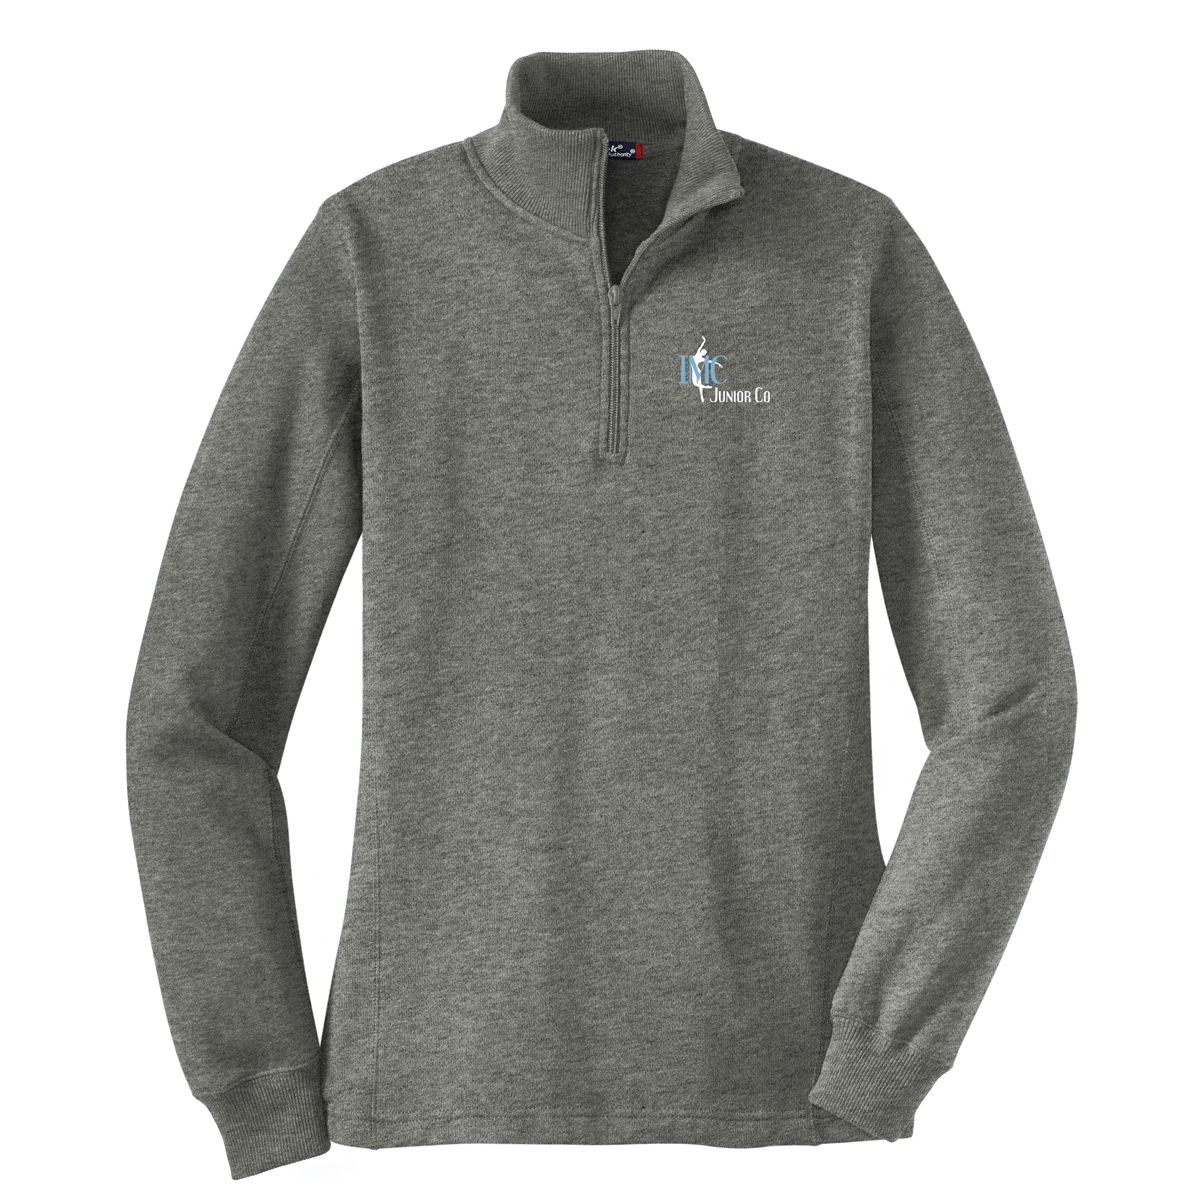 IMC Jr. Company- Women's 1/4 Zip Sweatshirt